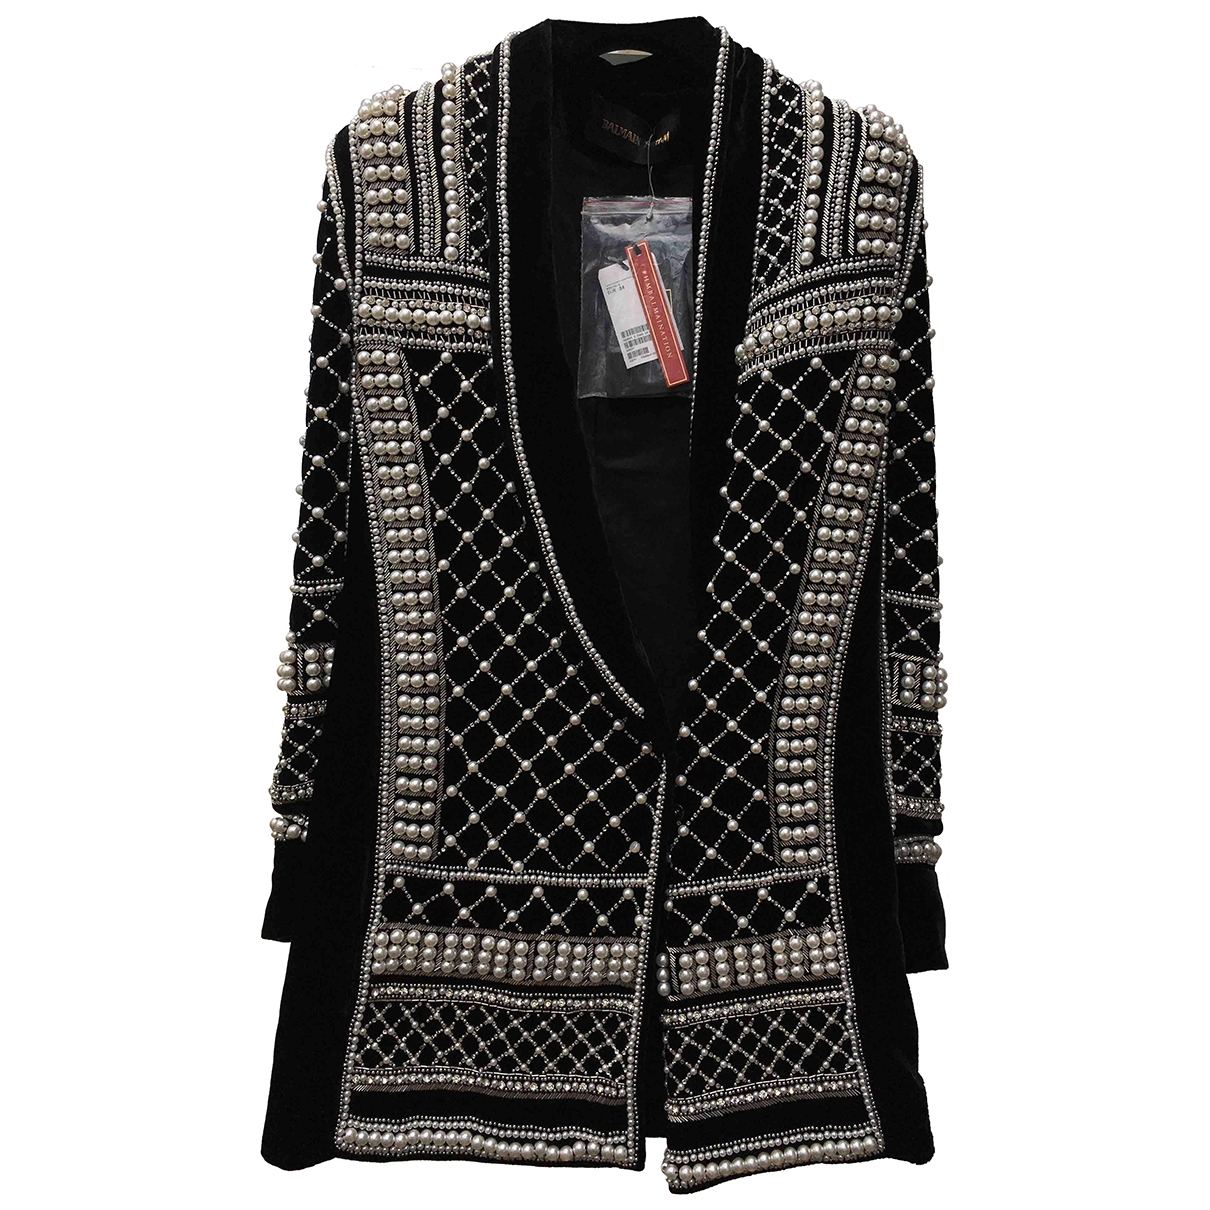 Balmain For H&m \N Black Velvet jacket for Women 34 FR